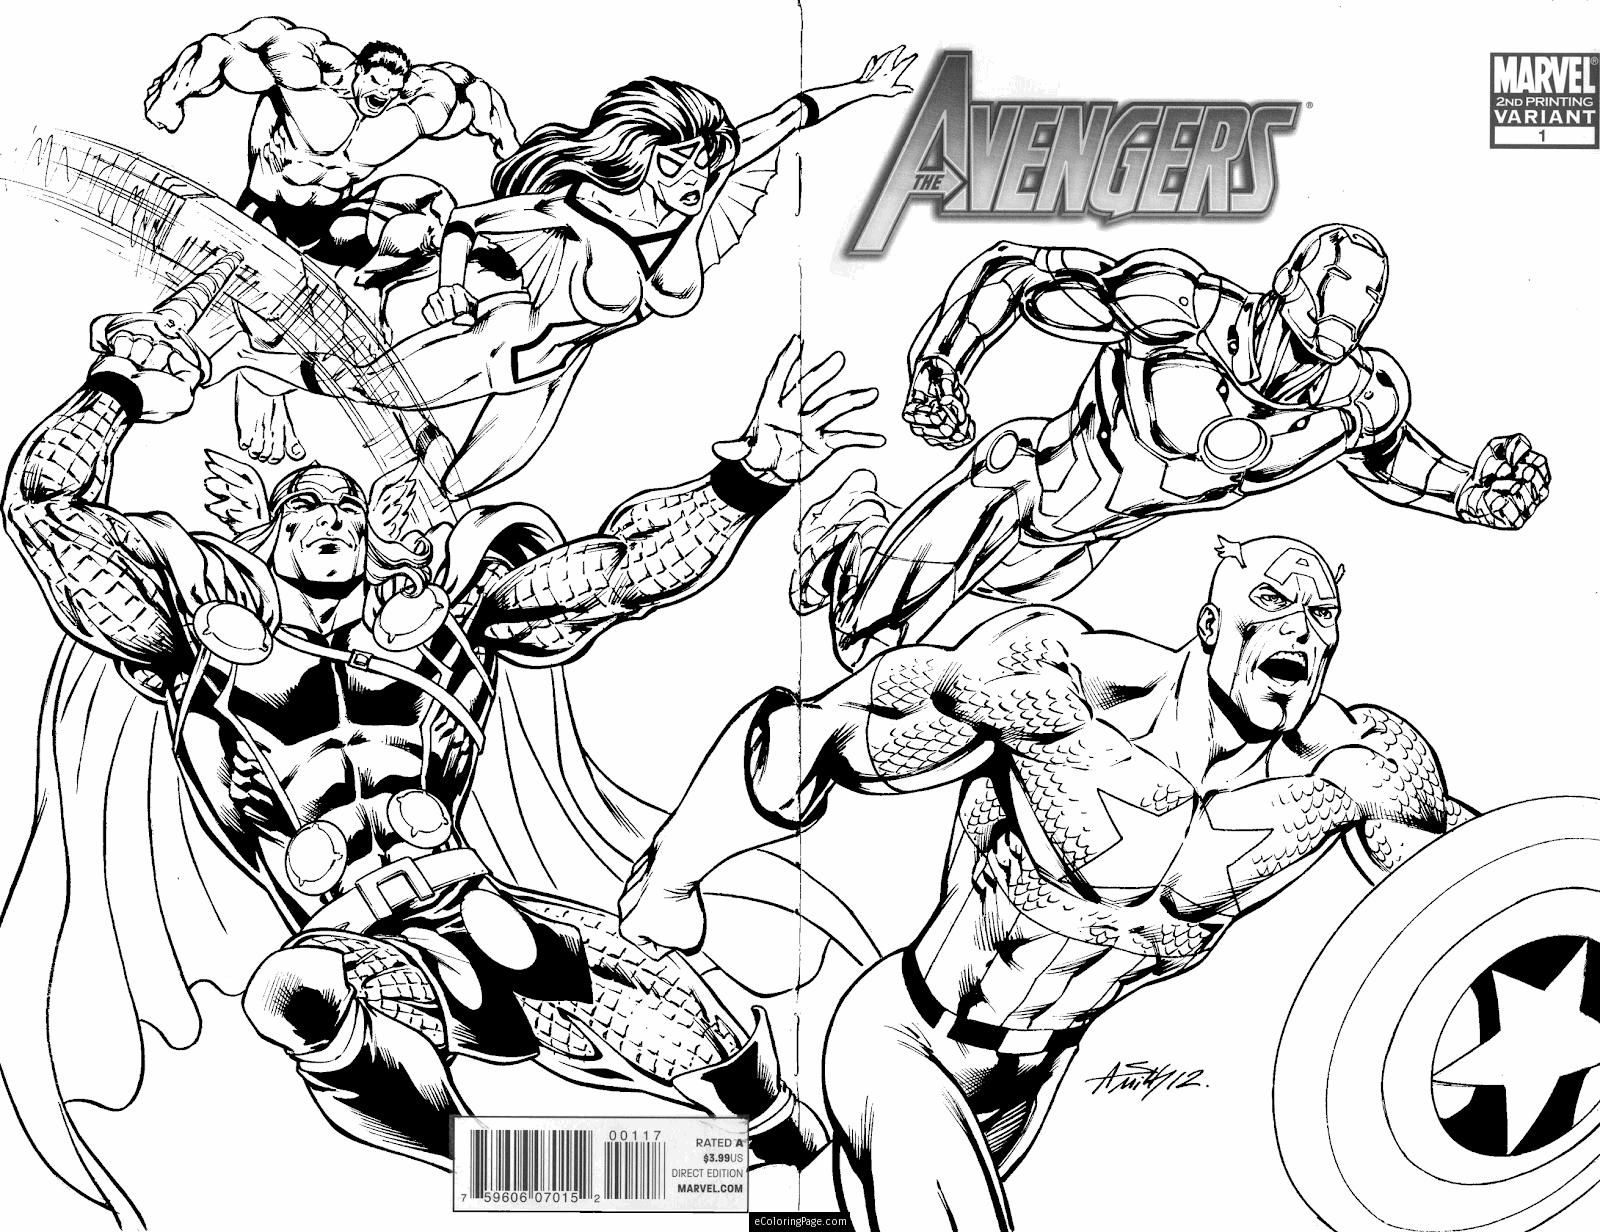 Marvel Superheroes Avengers In Action Coloring Page For